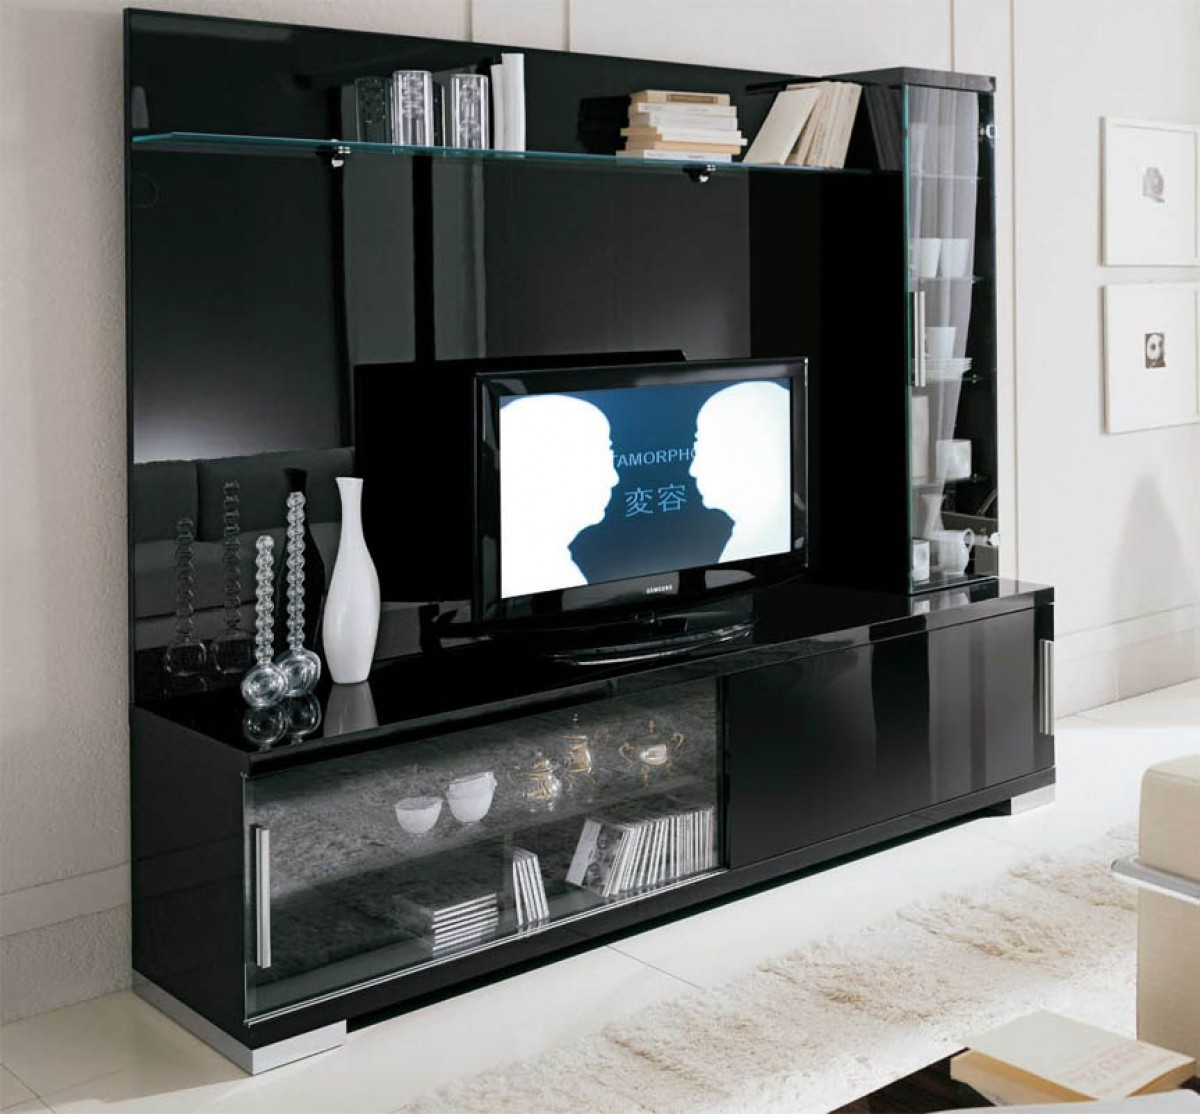 Alf siena modern italian entertainment center